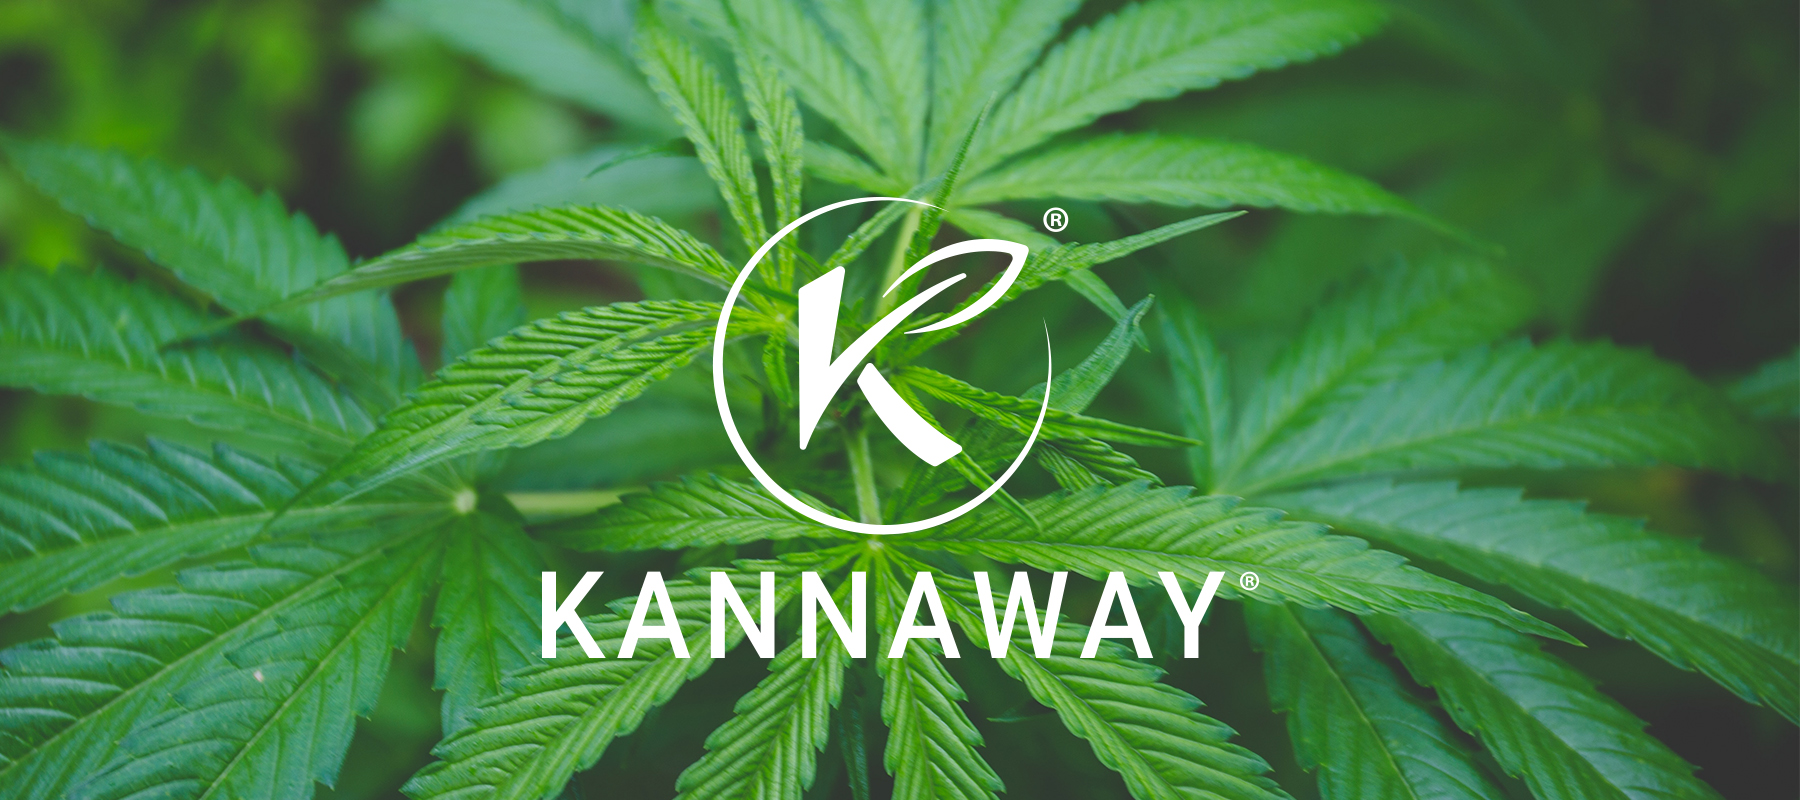 FDA testing of Kannaway CBD products confirms high-quality standard